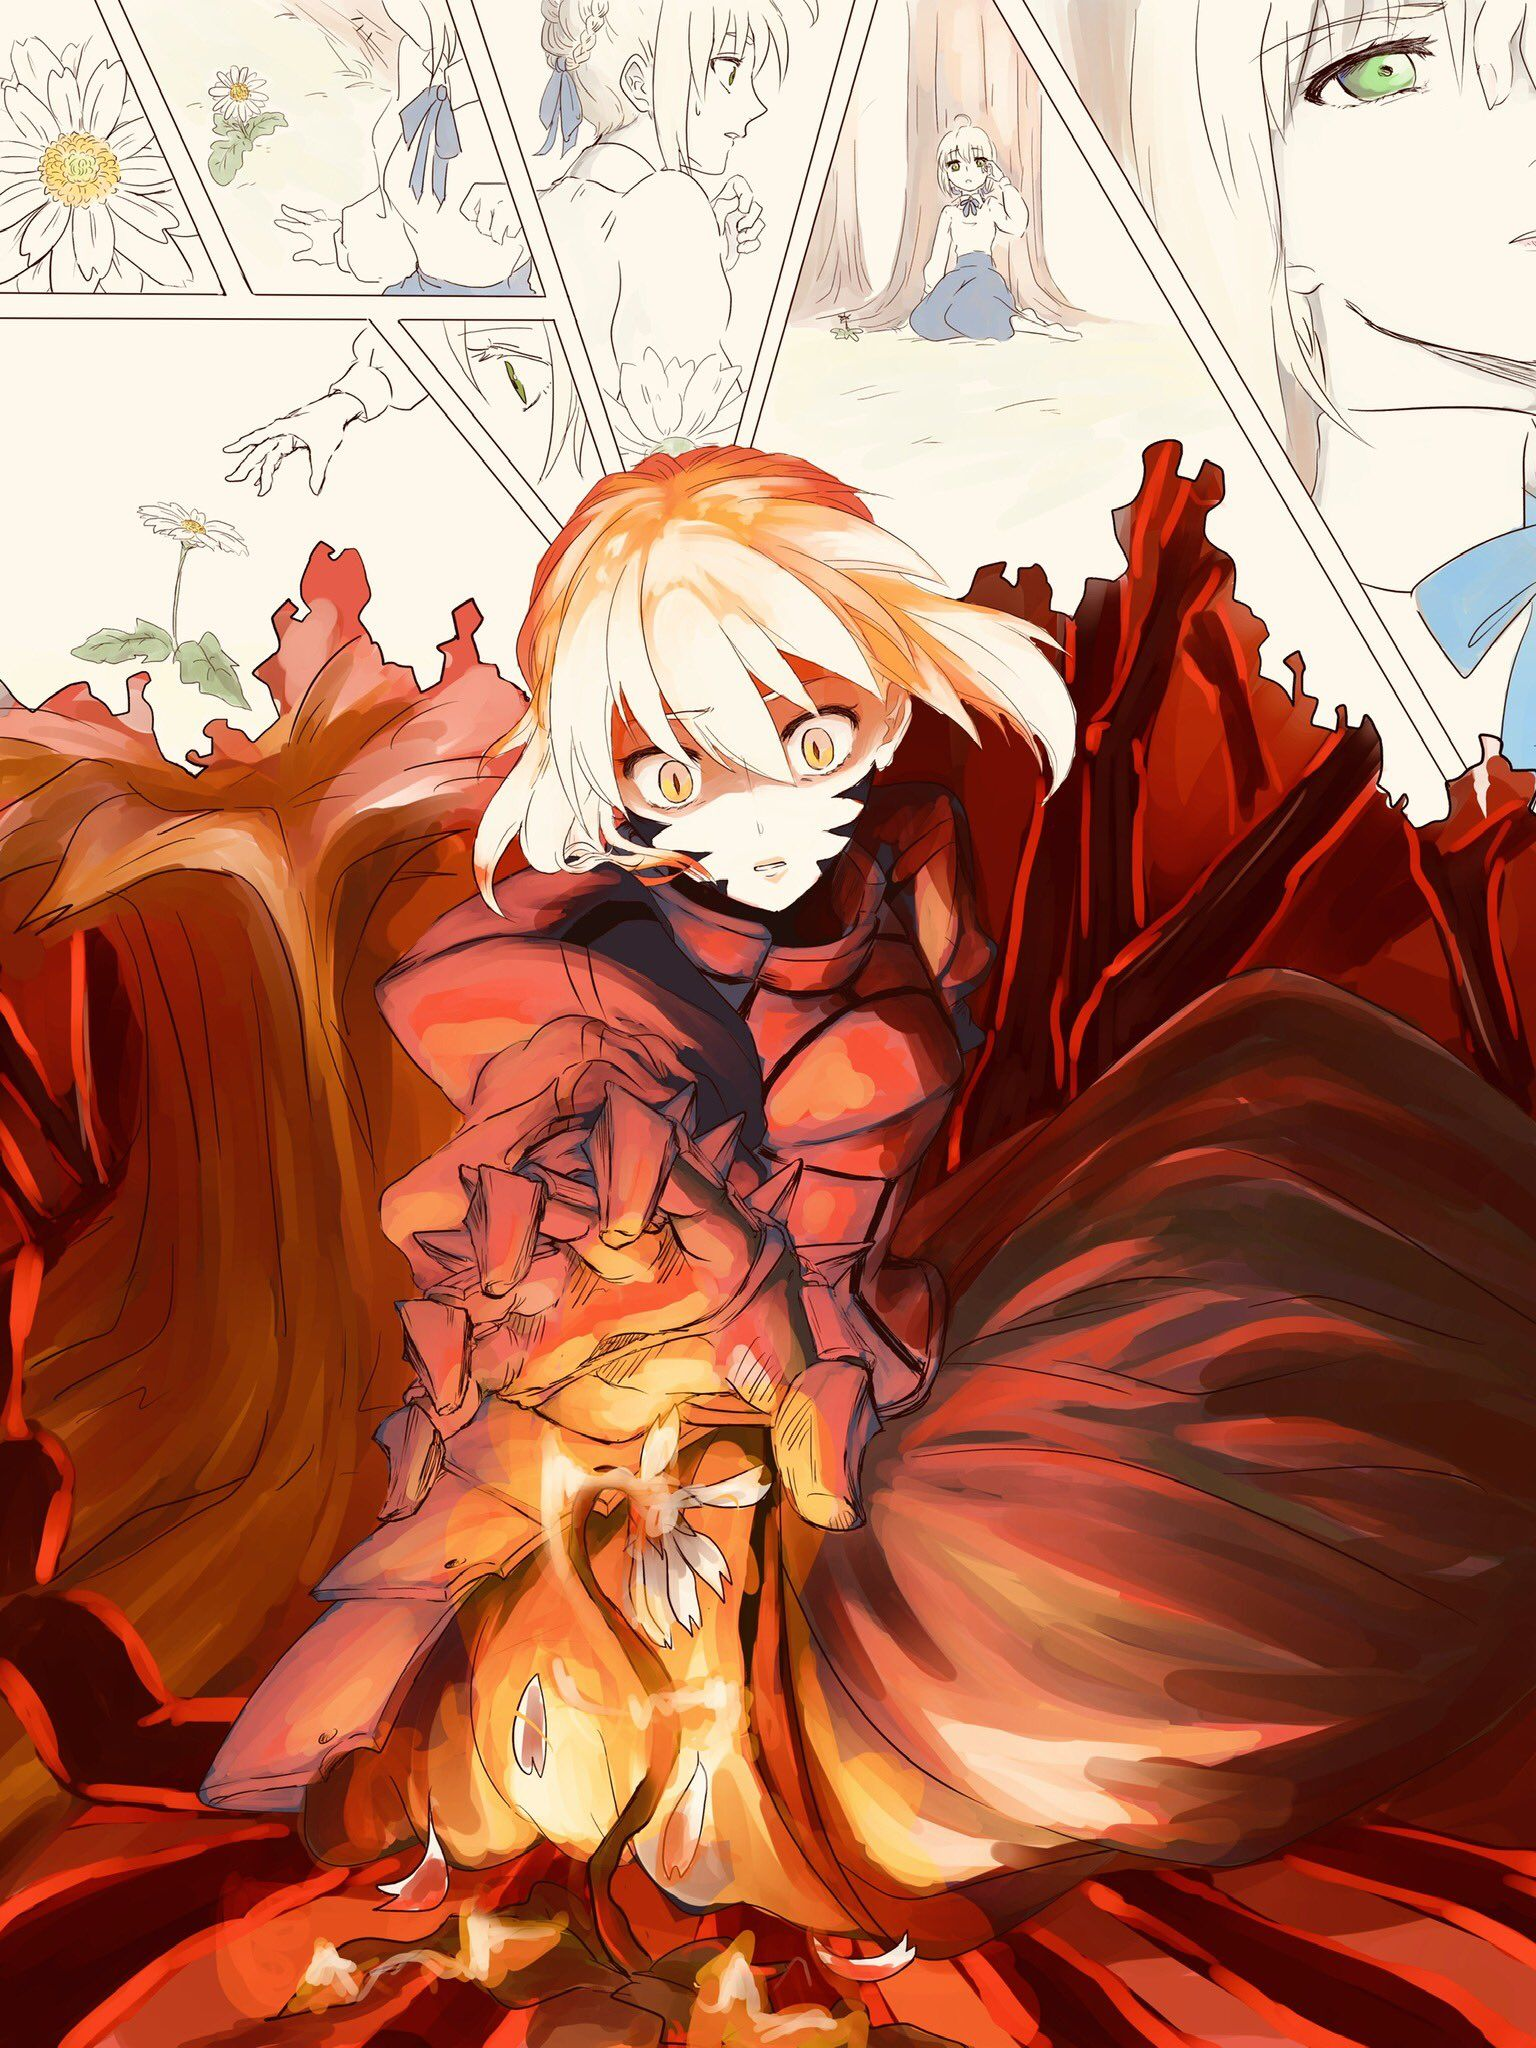 Burning flower saber fate stay night series fate